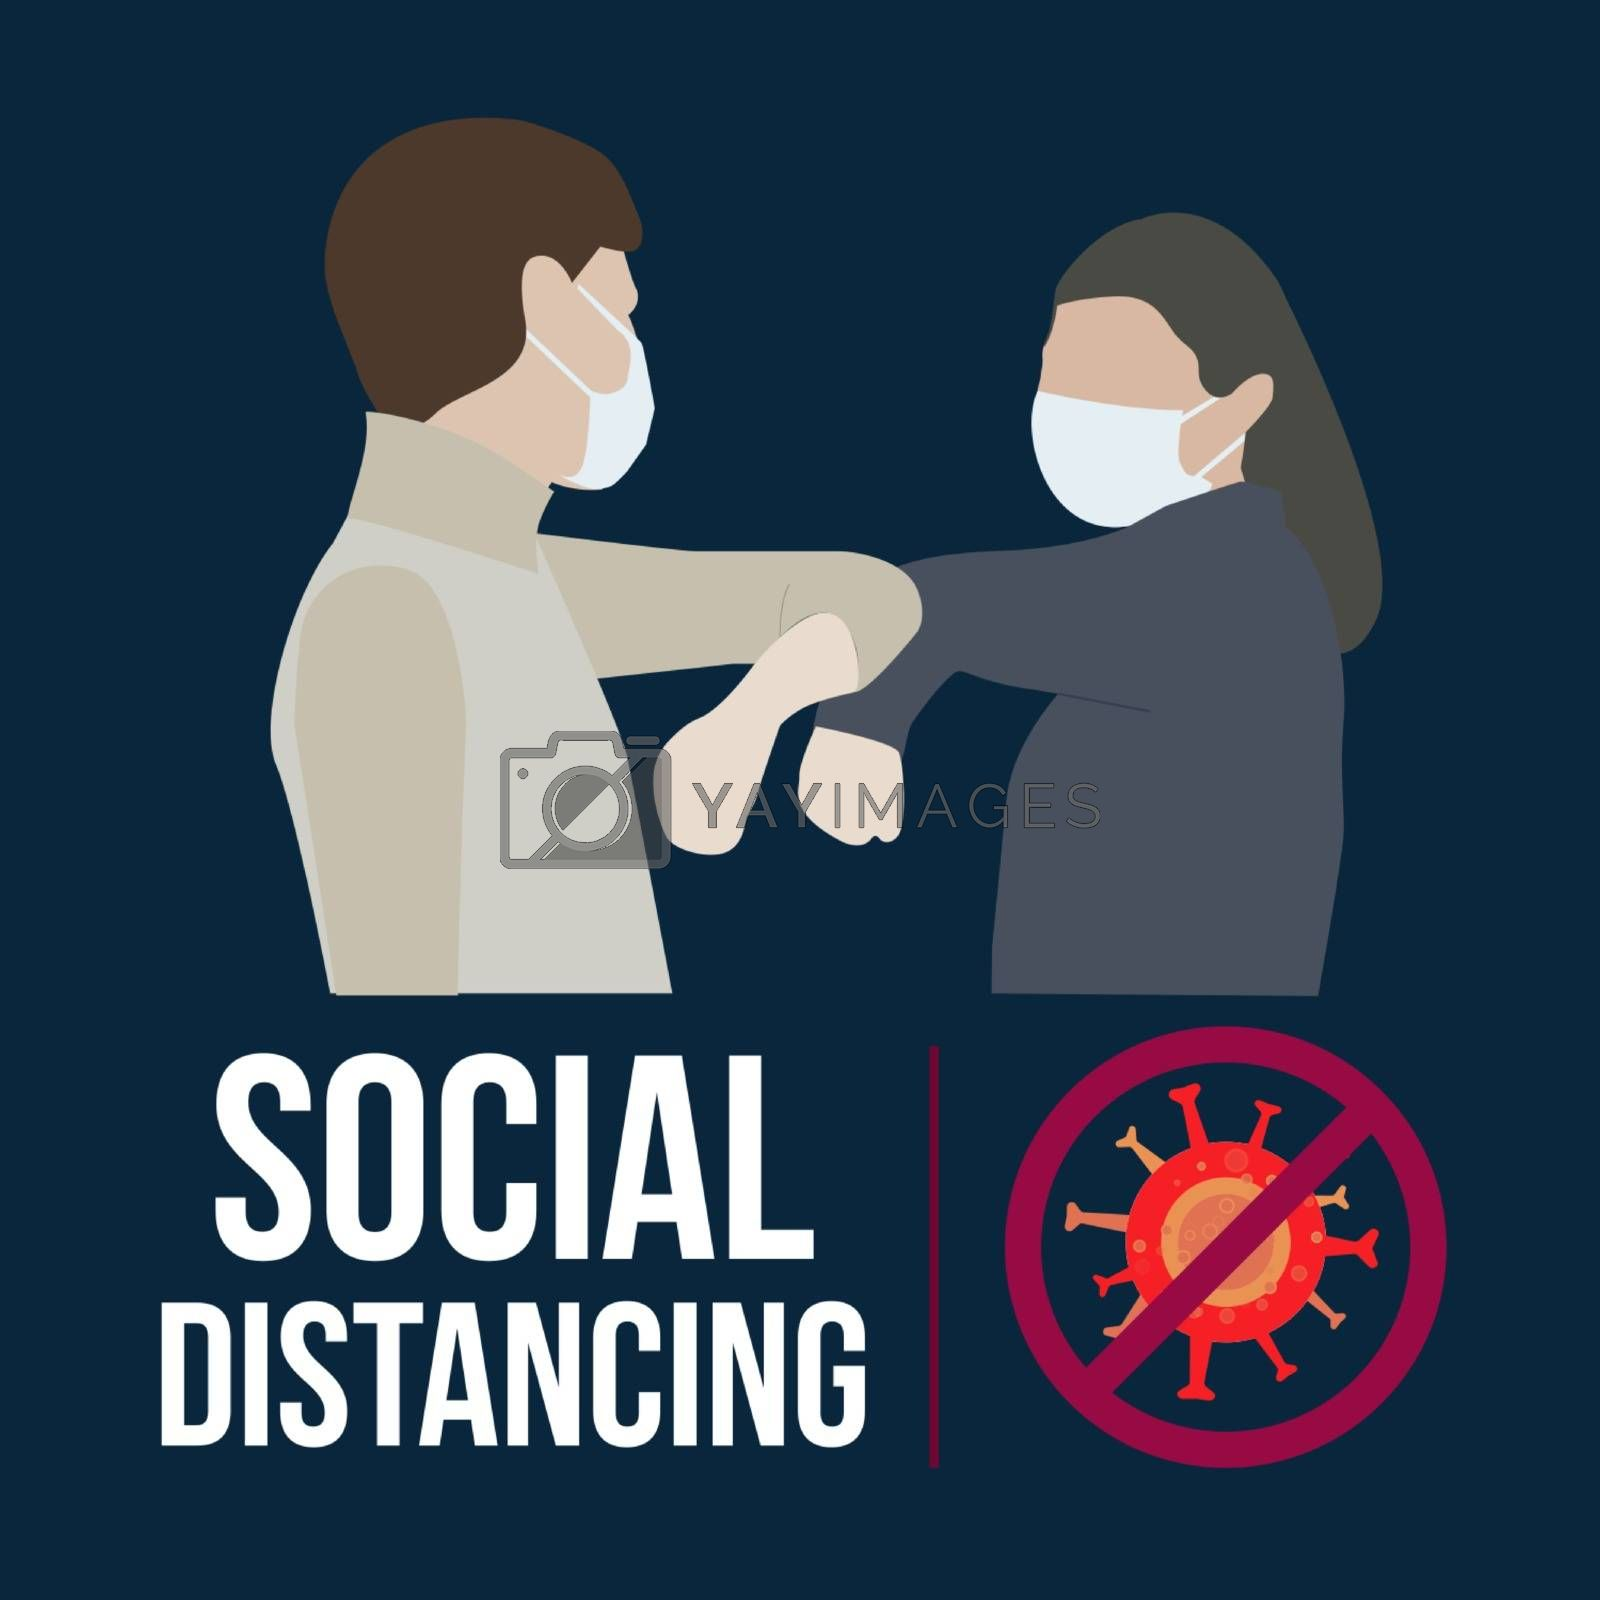 Social Distancing for covid 19 with couple using face mask.Keep distance in public society people to protect from COVID-19 coronavirus.Man and woman keep a distance.